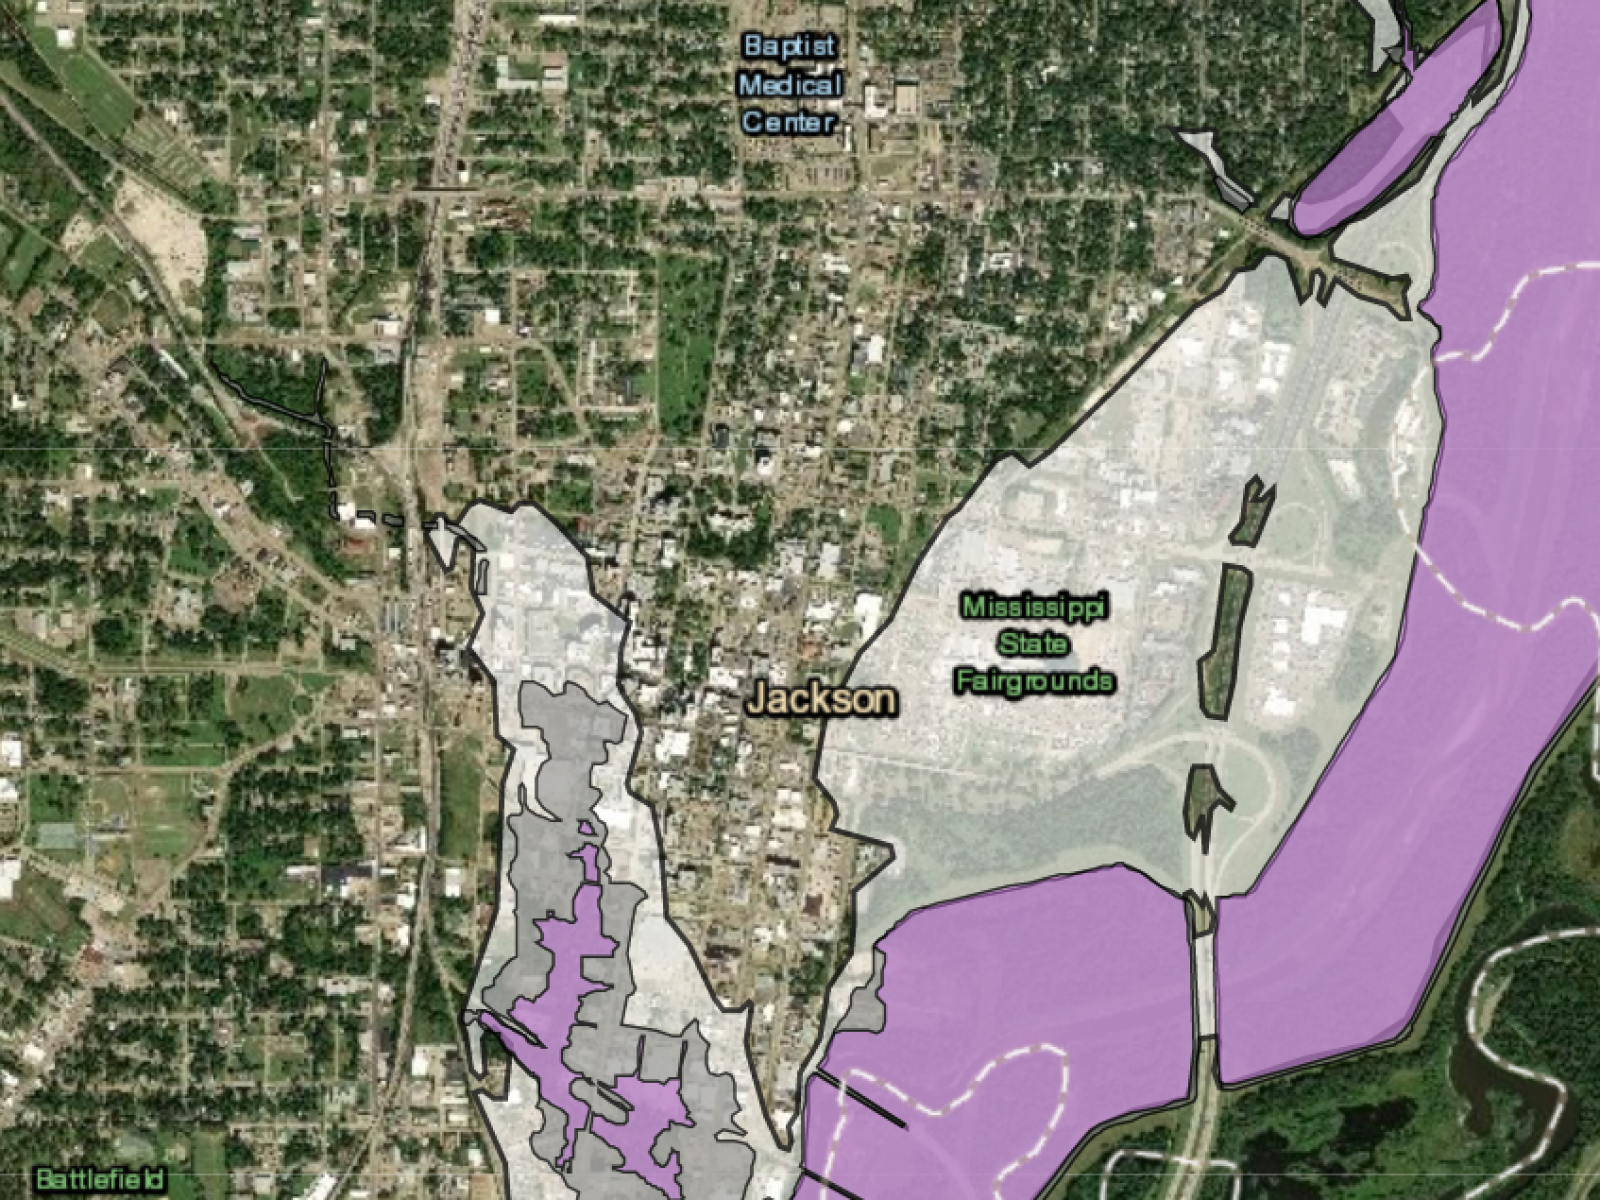 map of pearl mississippi Mississippi Flood Update Forecast Map And What You Need To Know map of pearl mississippi